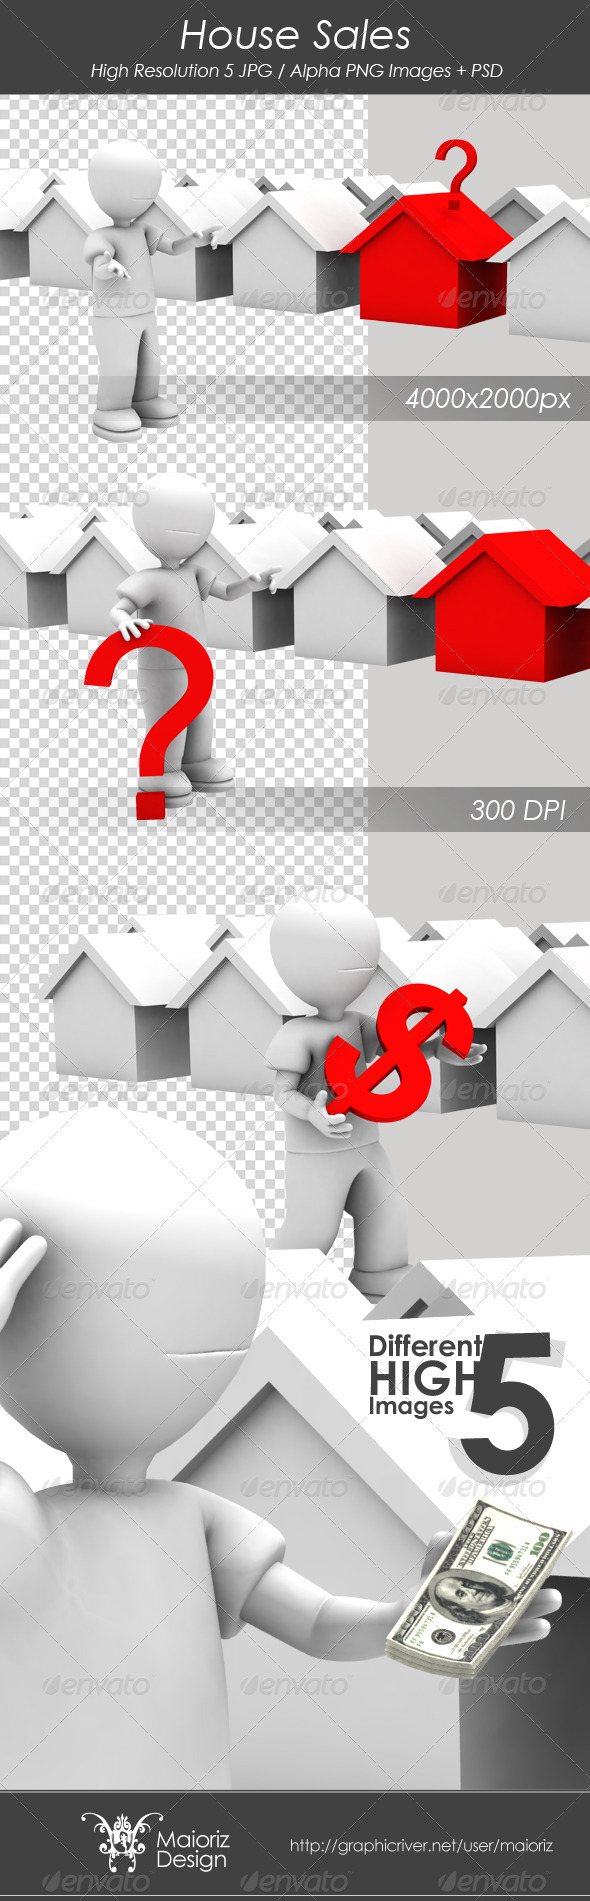 GraphicRiver House Sales 3115415